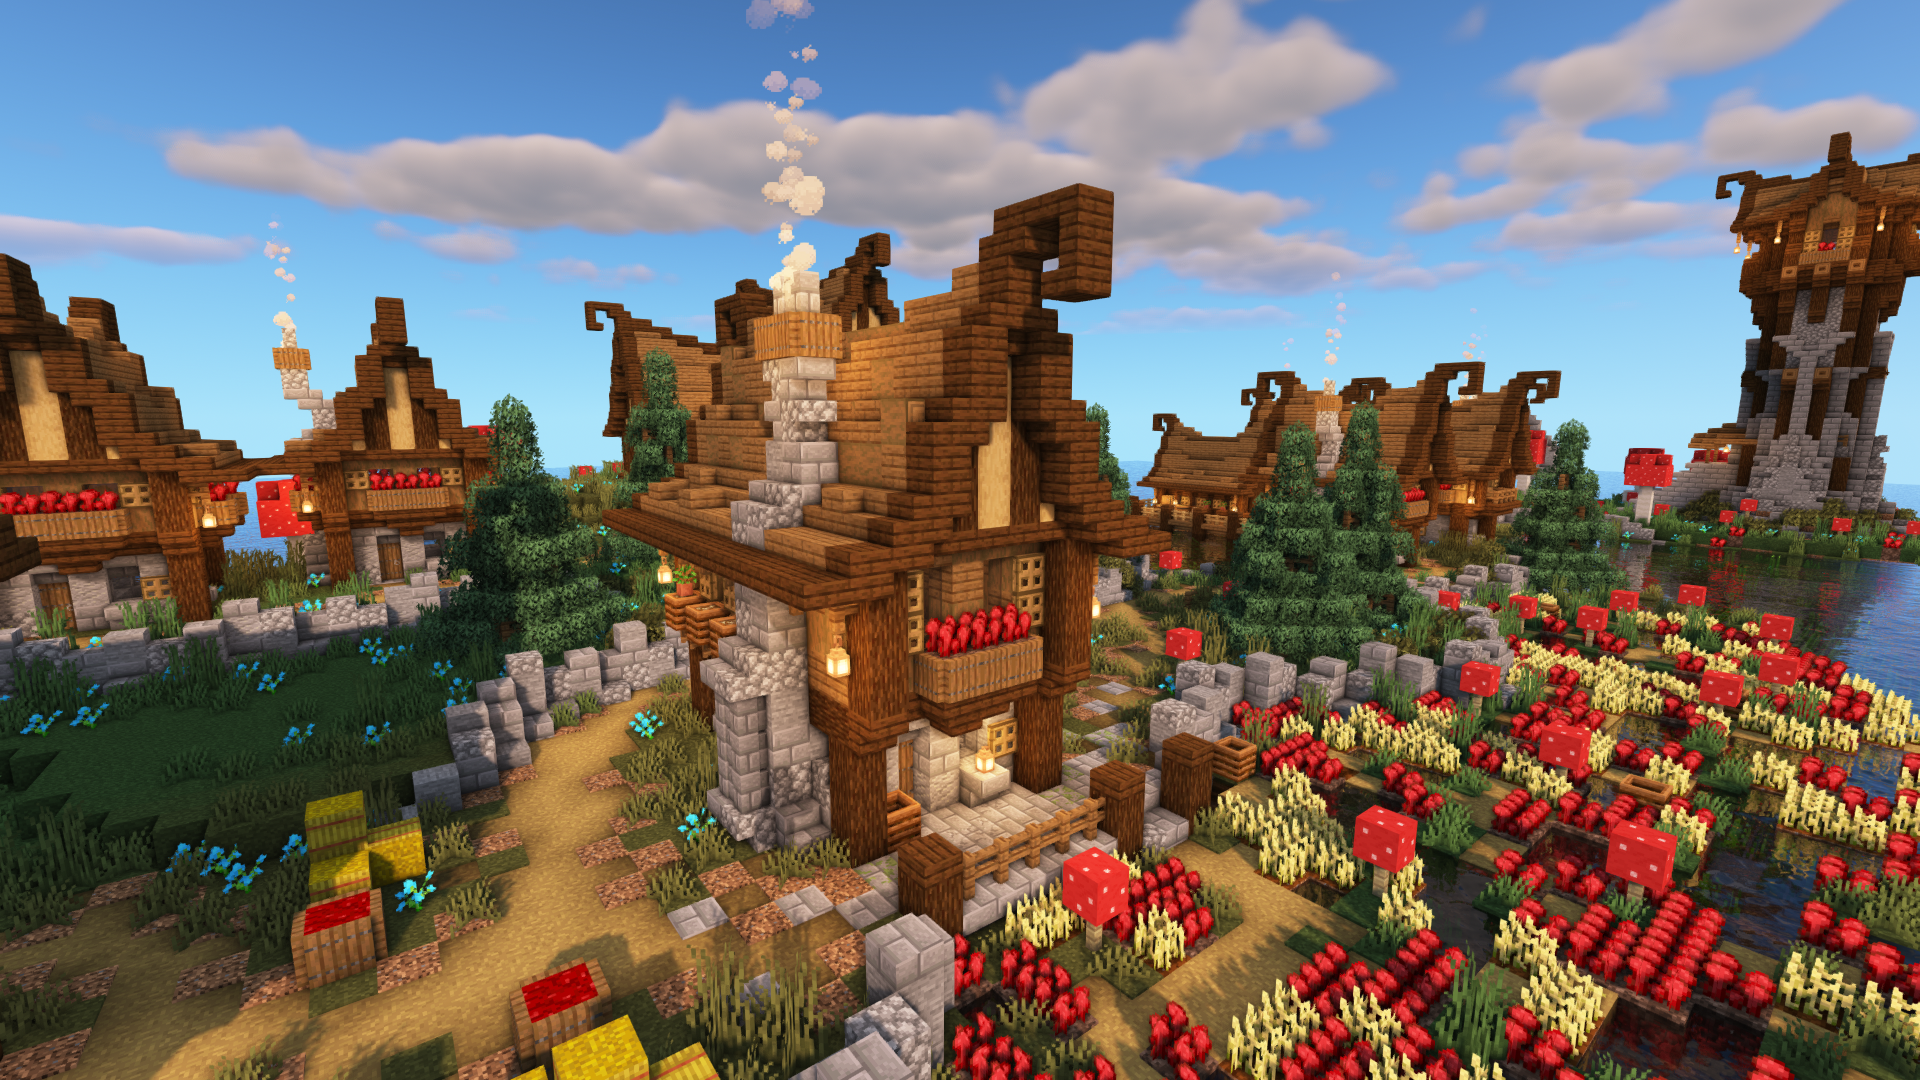 Minecraft Timelapse: Transforming a Swamp Biome into a Fantasy Village